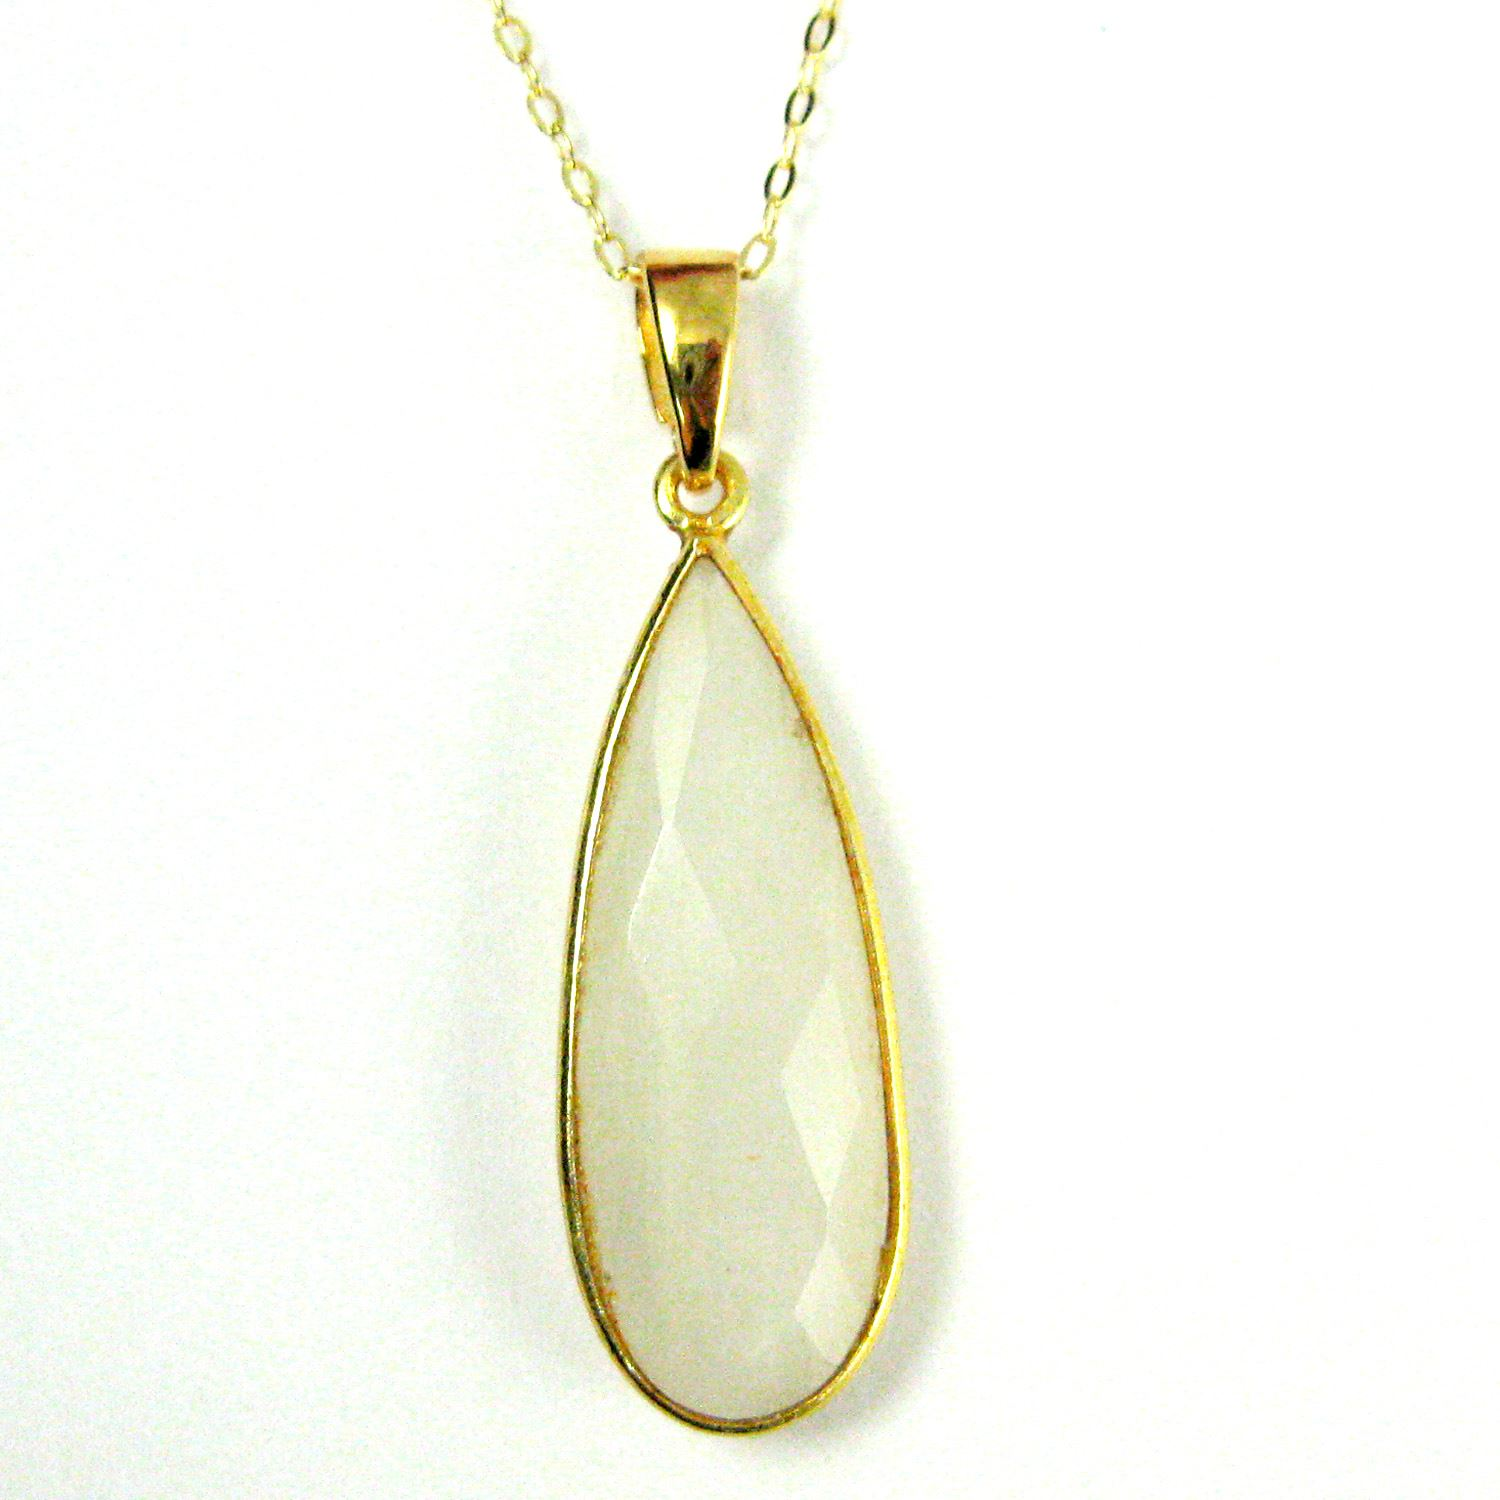 Bezel Gemstone Pendant with Bail - Gold plated Sterling Silver Elongated Teardrpo Gem Pendant - Ready for Necklace - 40mm - Moonstone